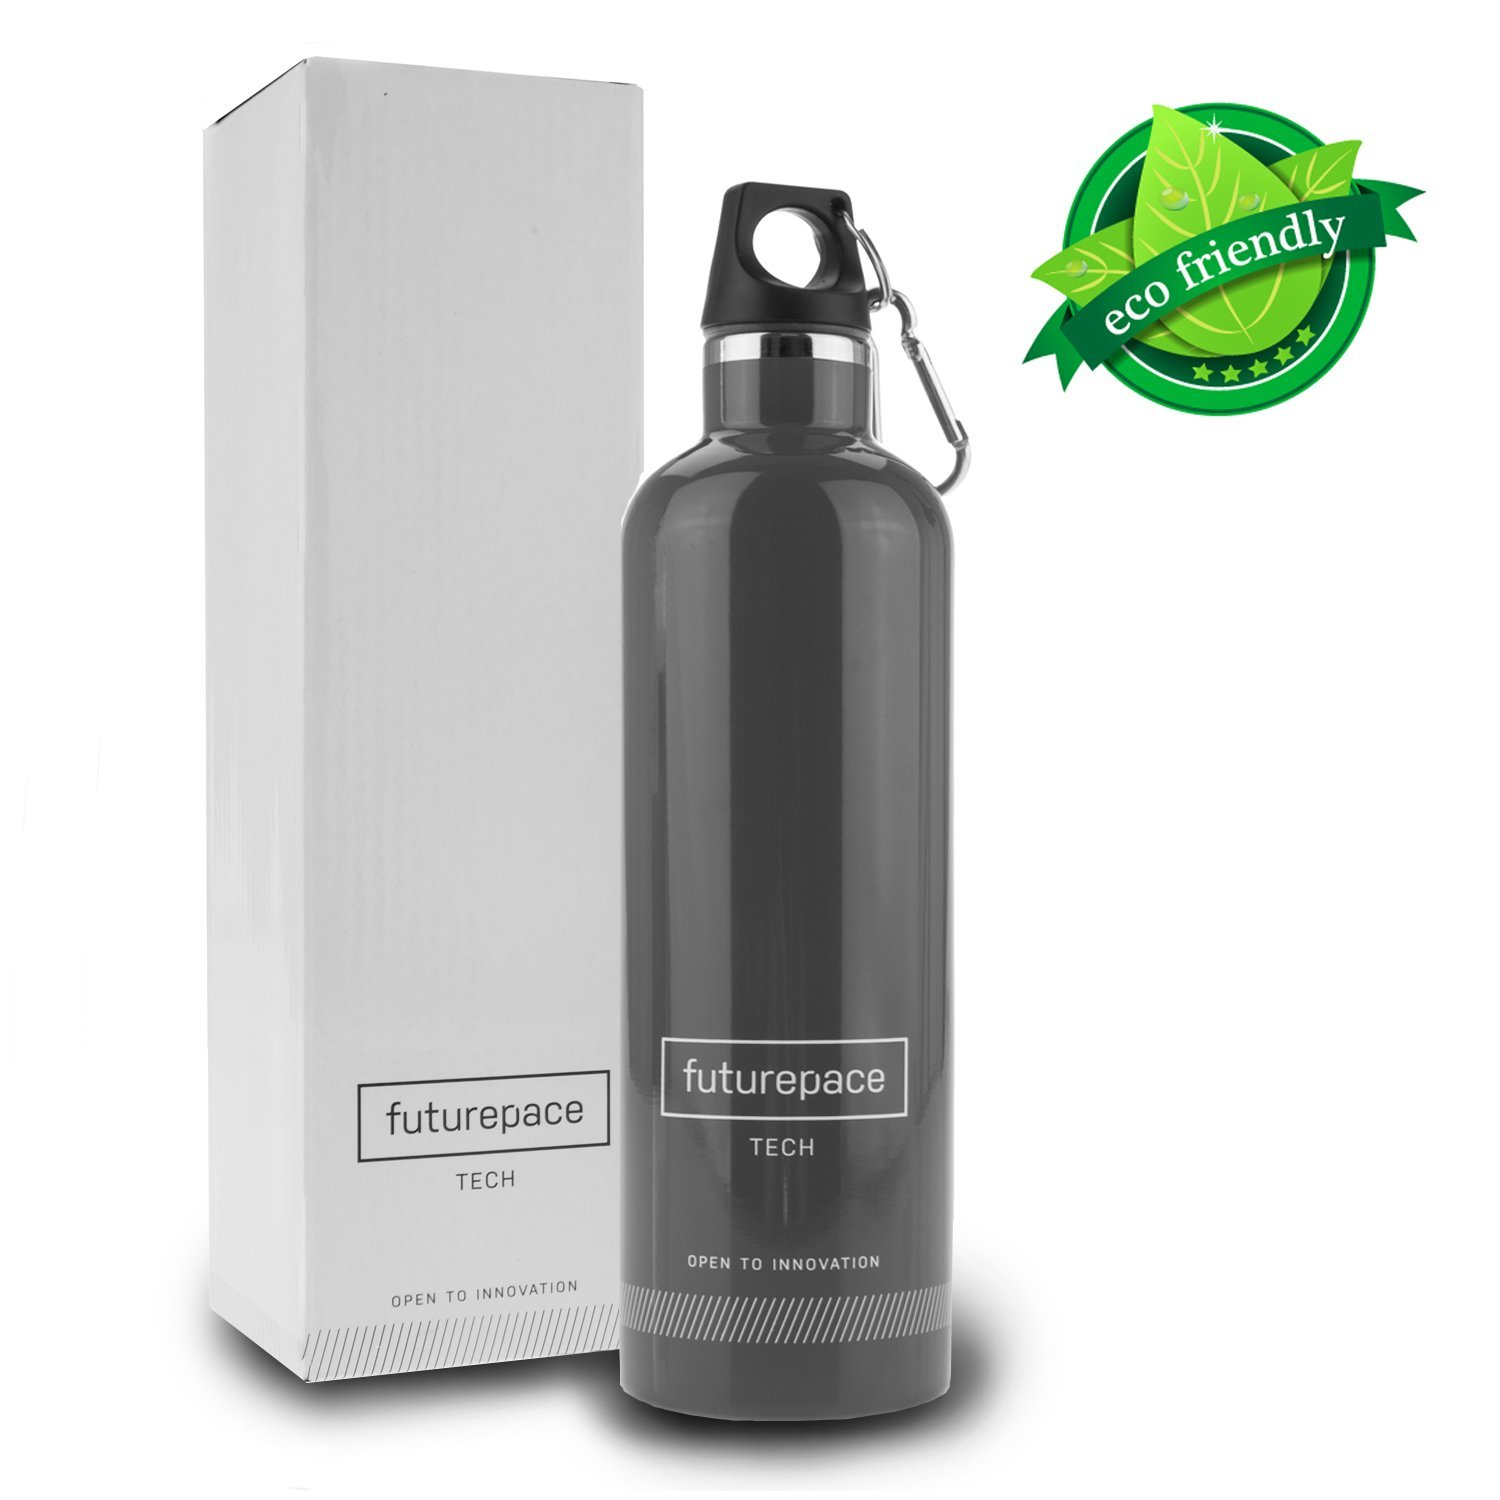 Holiday Gift Guide: FUTUREPACE Stainless Steel Insulated Water Bottle + Reader Giveaway